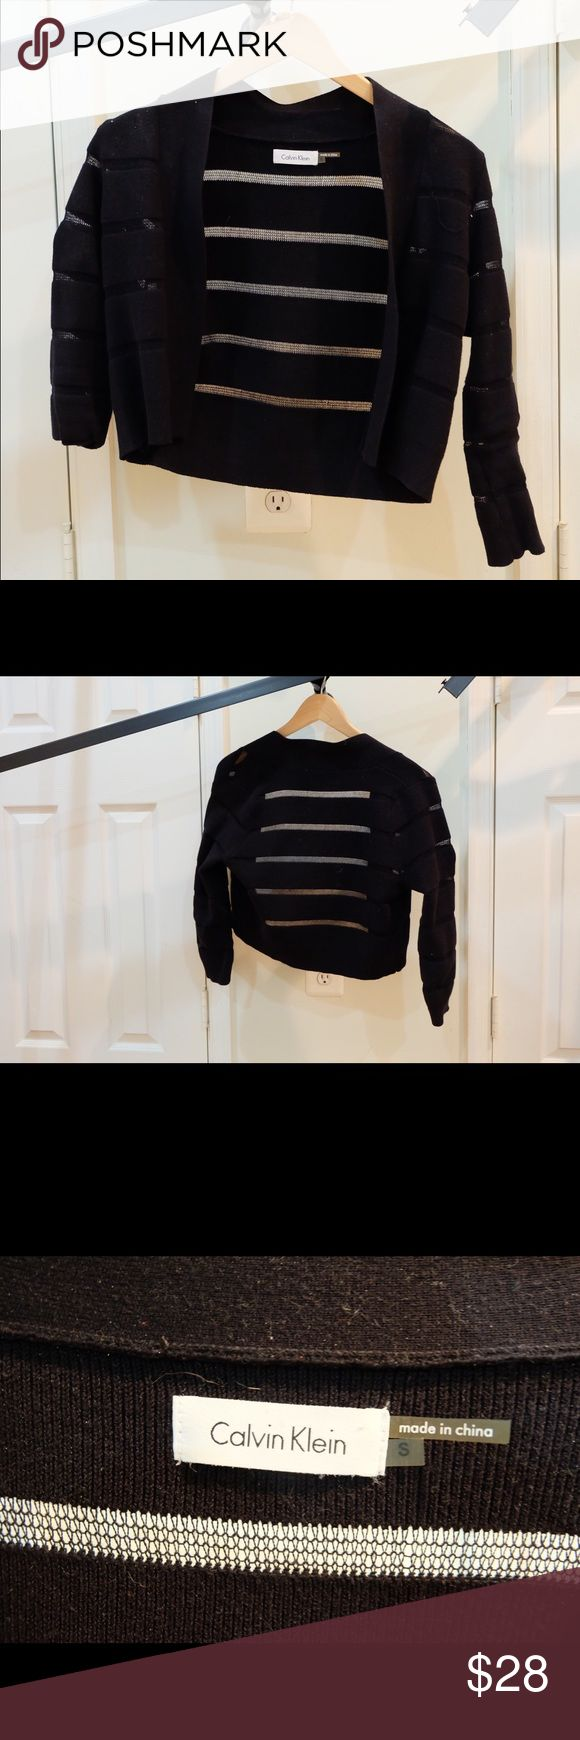 Black Calvin Klein Short Cardigan Feminine yet bold, this cardigan is cropped and polished with a pencil skirt or high waisted work pants. The transparent stripes make arms look amazing and elegant. 78% cotton and 22% nylon. Calvin Klein Sweaters Cardigans